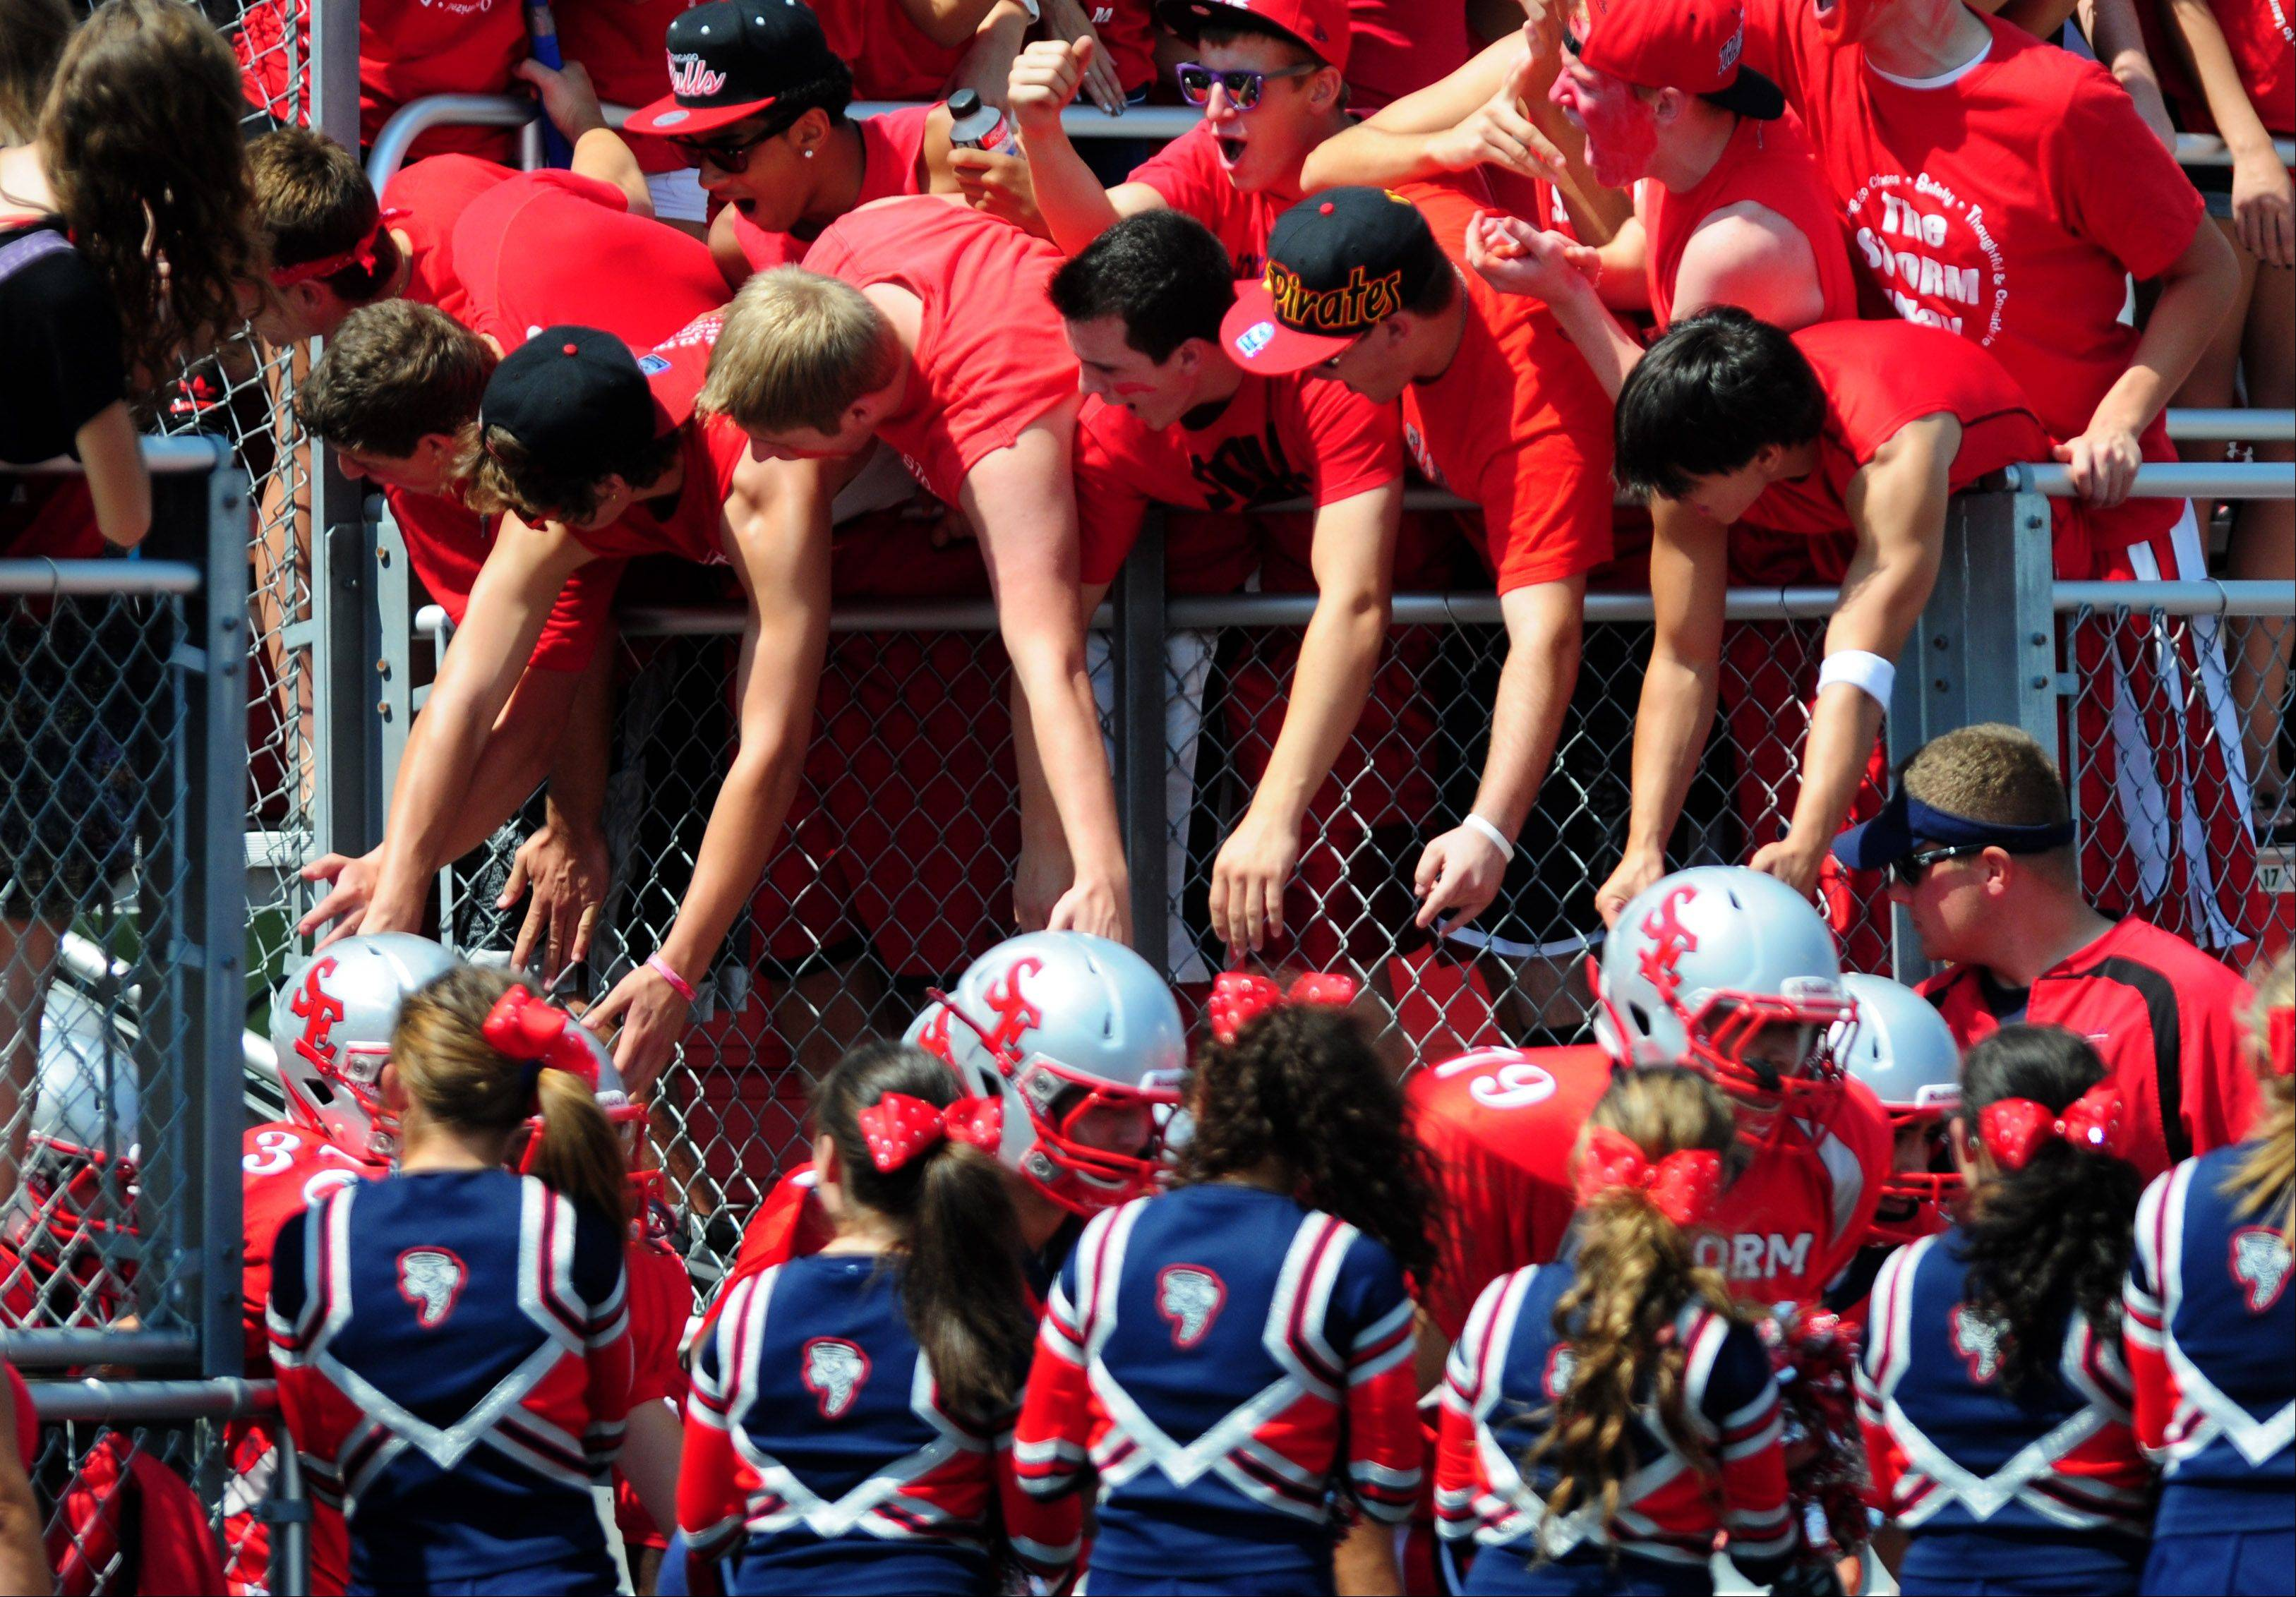 The South Elgin football team is met by low-fiving fans as they take the field Saturday to face Downers Grove South in South Elgin.